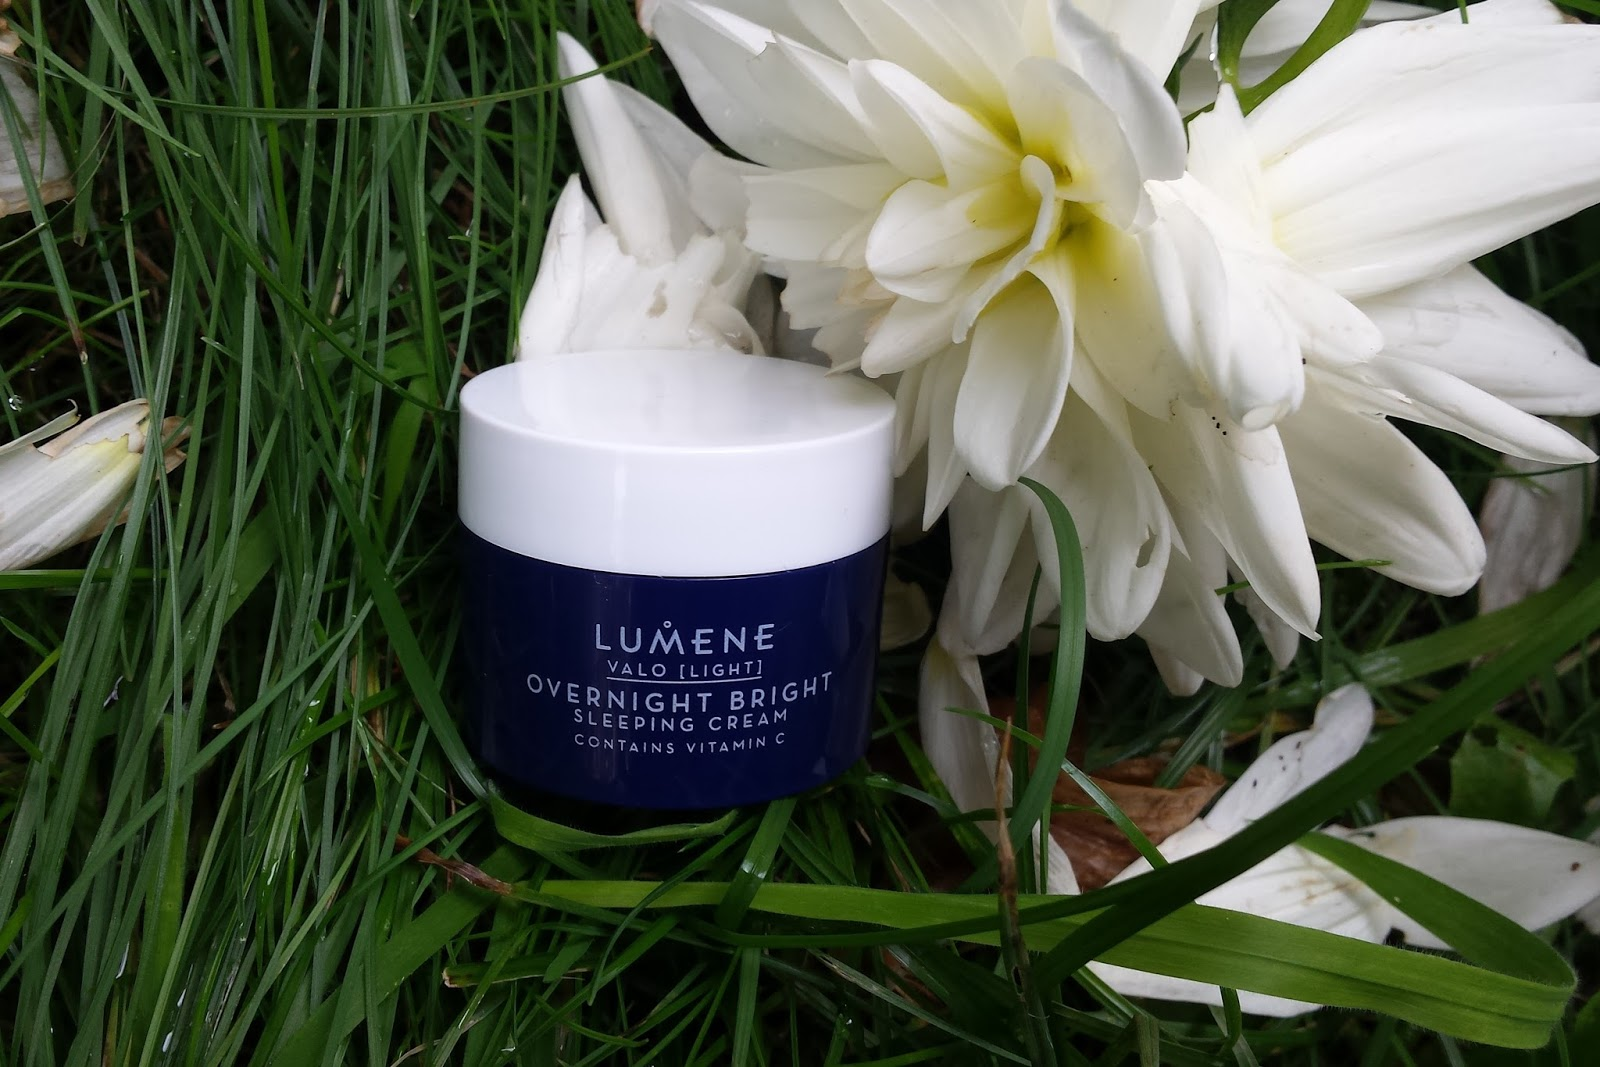 Lumene Overnight Bright Sleeping Cream Vitamin C crema de noche